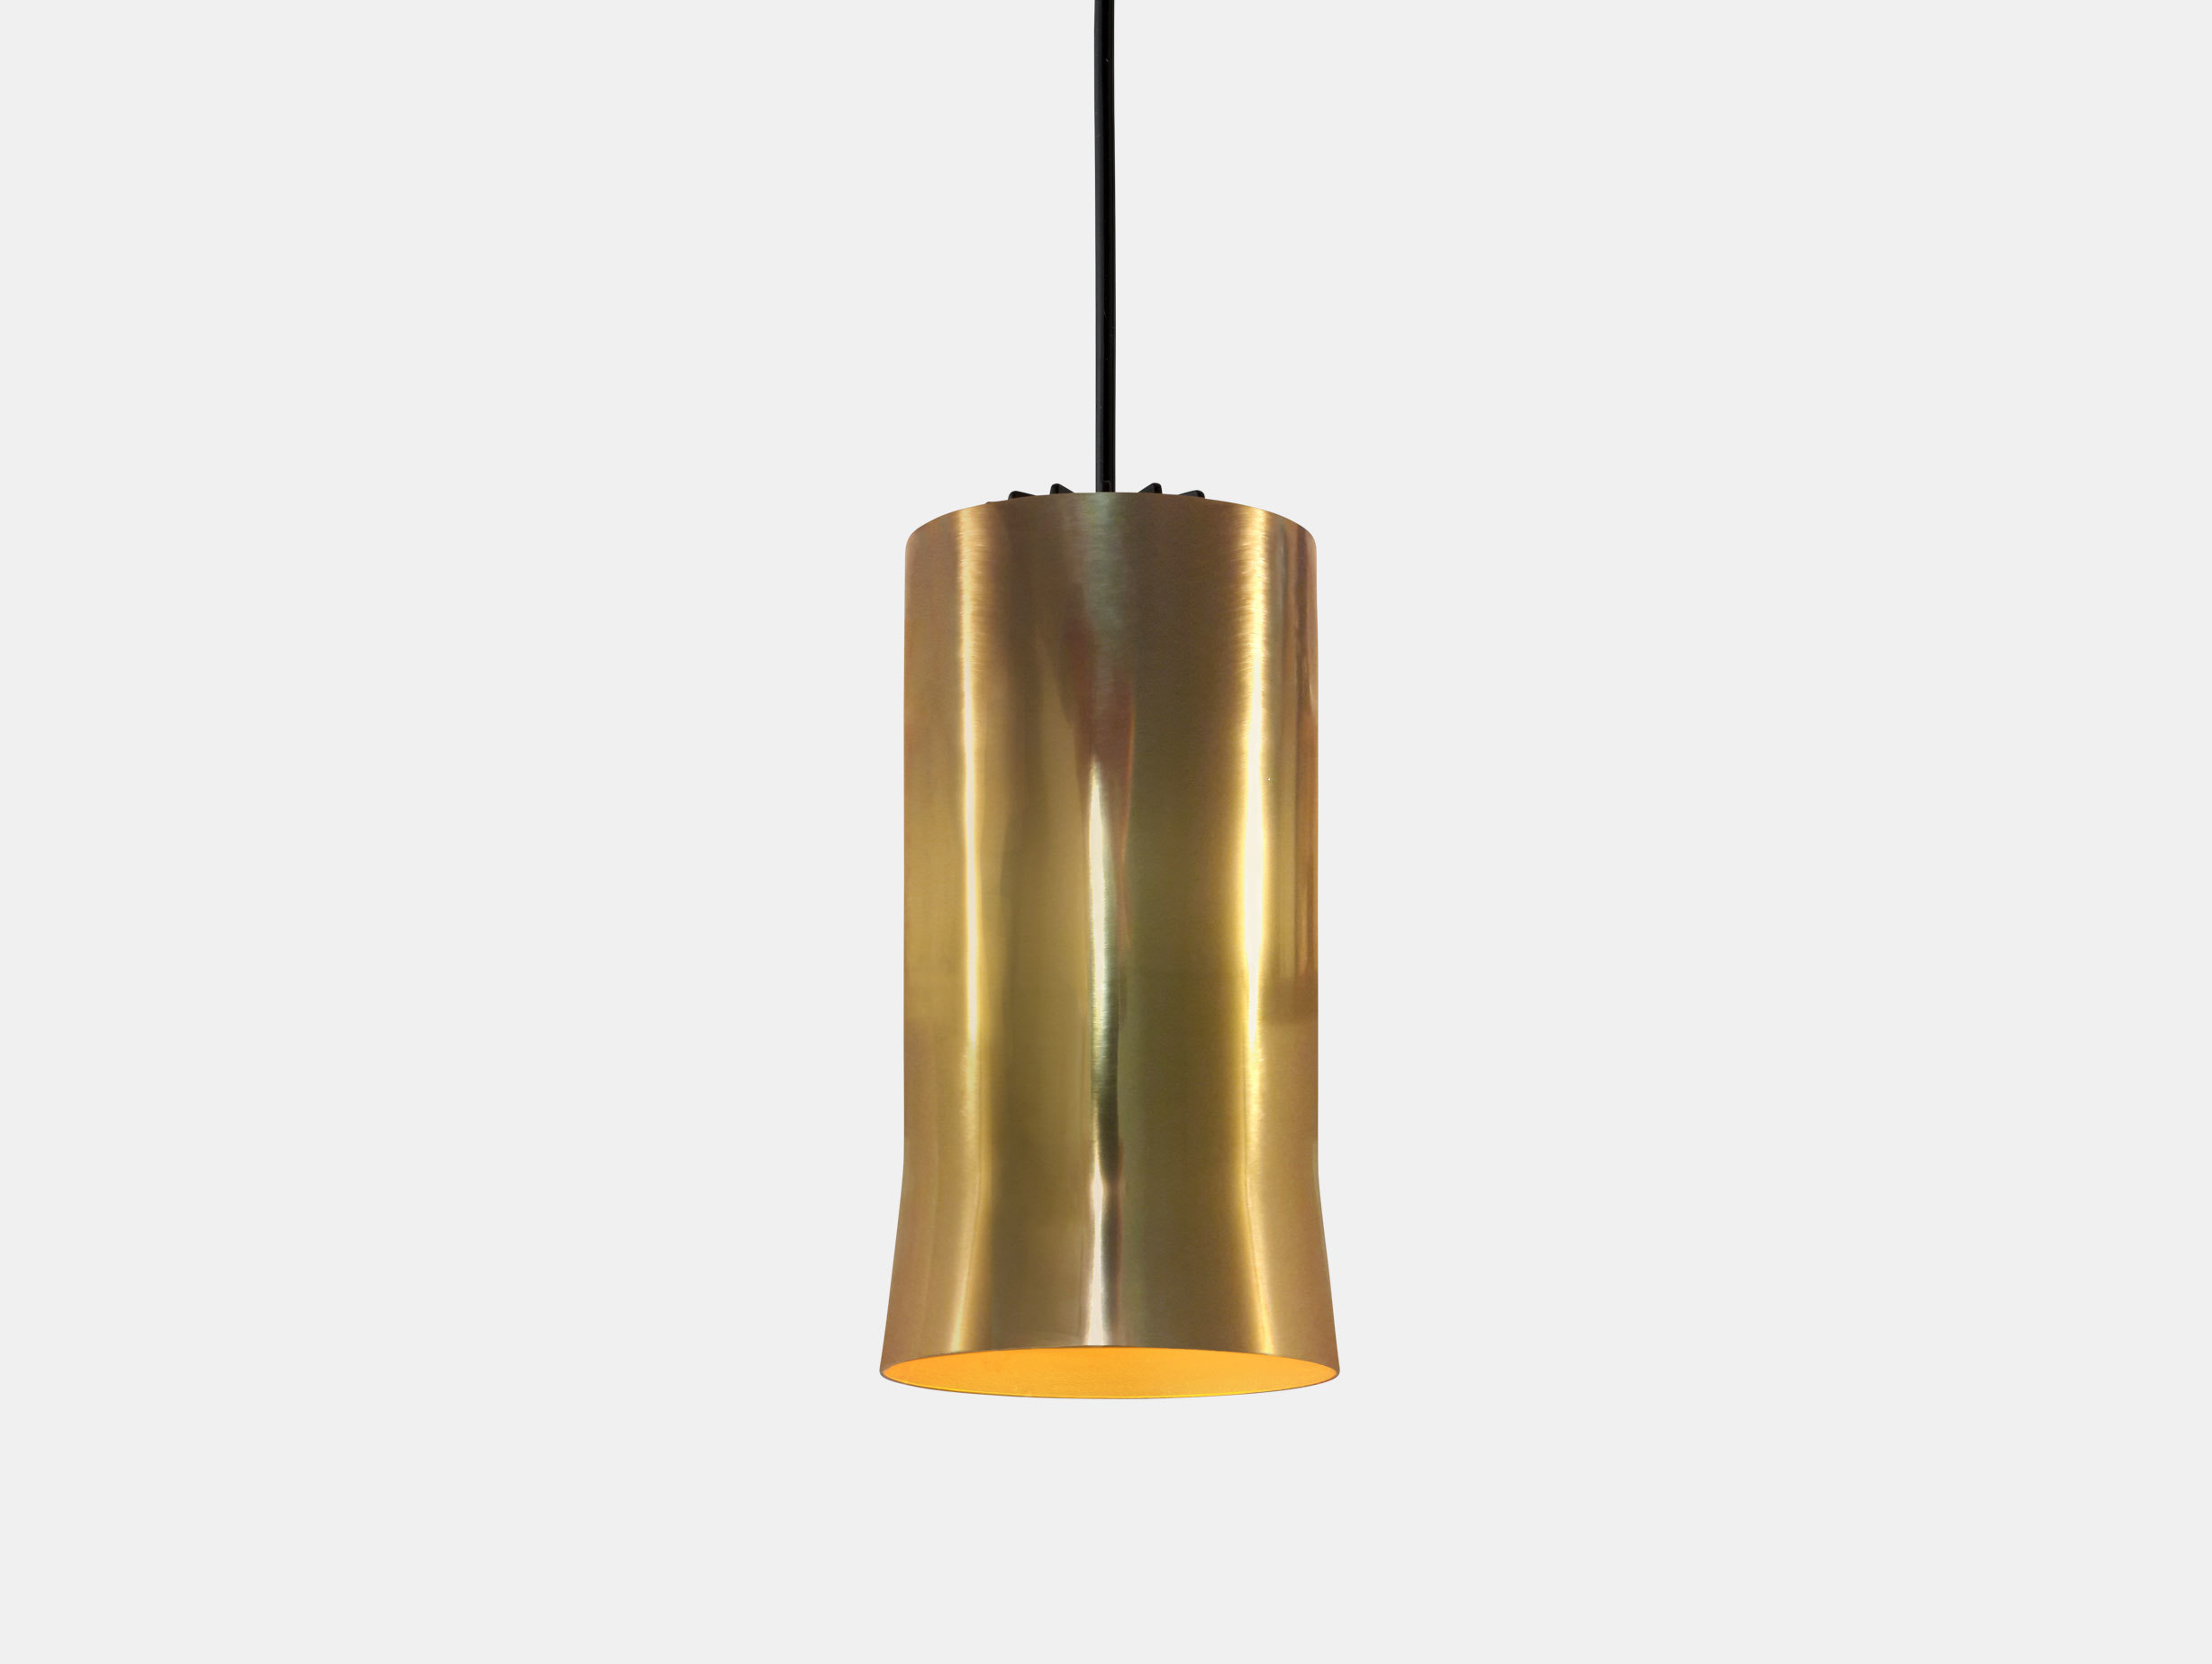 Cirio Simple Pendant Light image 1